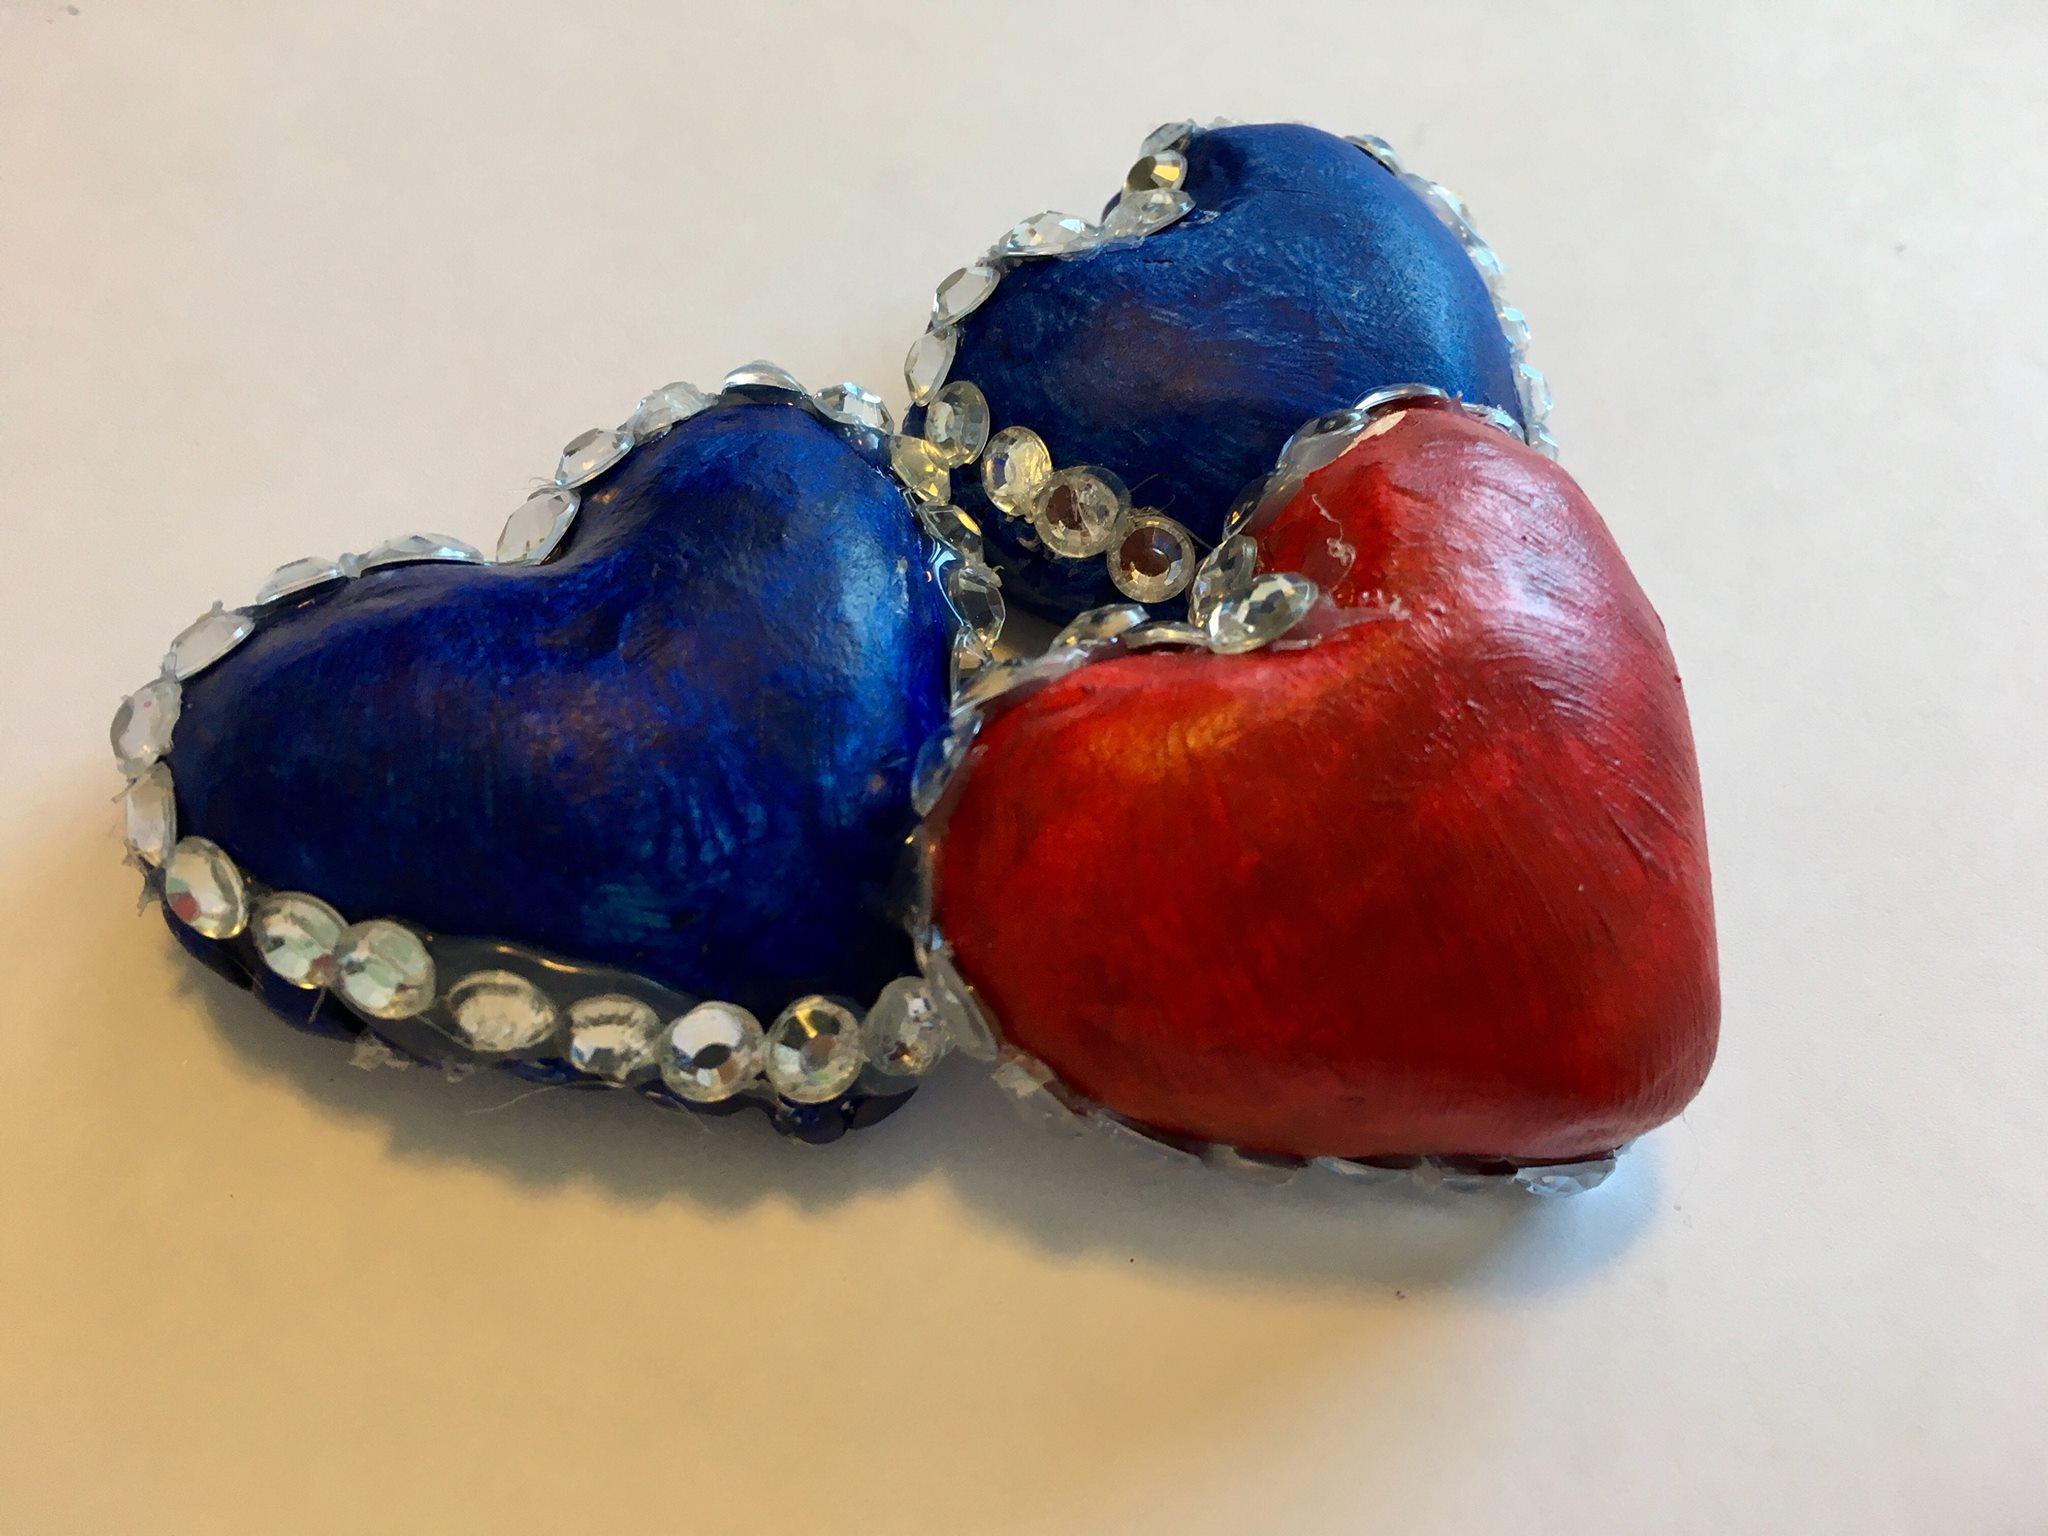 Photo Description: This sculpture depicts a red heart-shaped jewel resting in-between two blue heart-shaped jewels. All three are trimmed with silver gems.